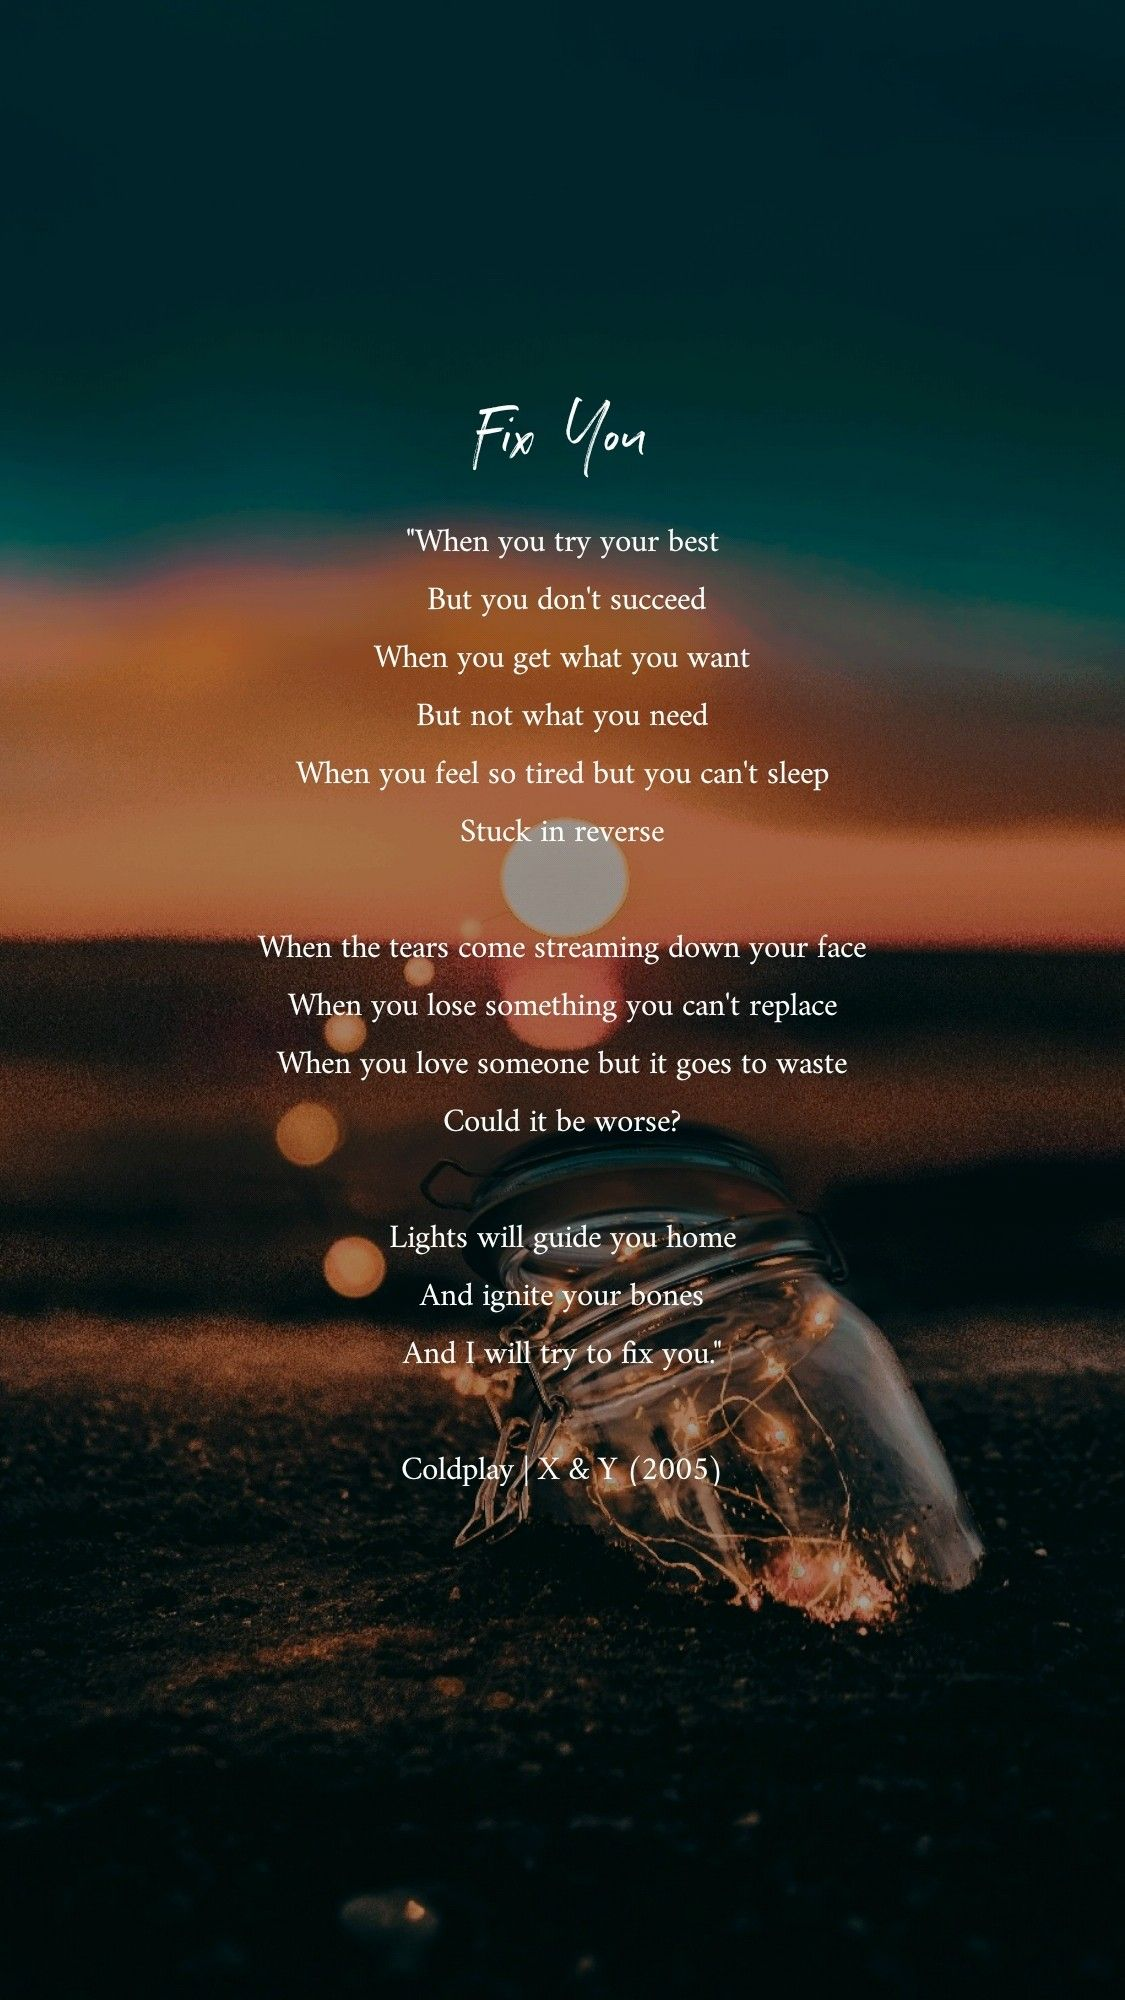 Fix You Coldplay My Fav Song With Images Coldplay Lyrics